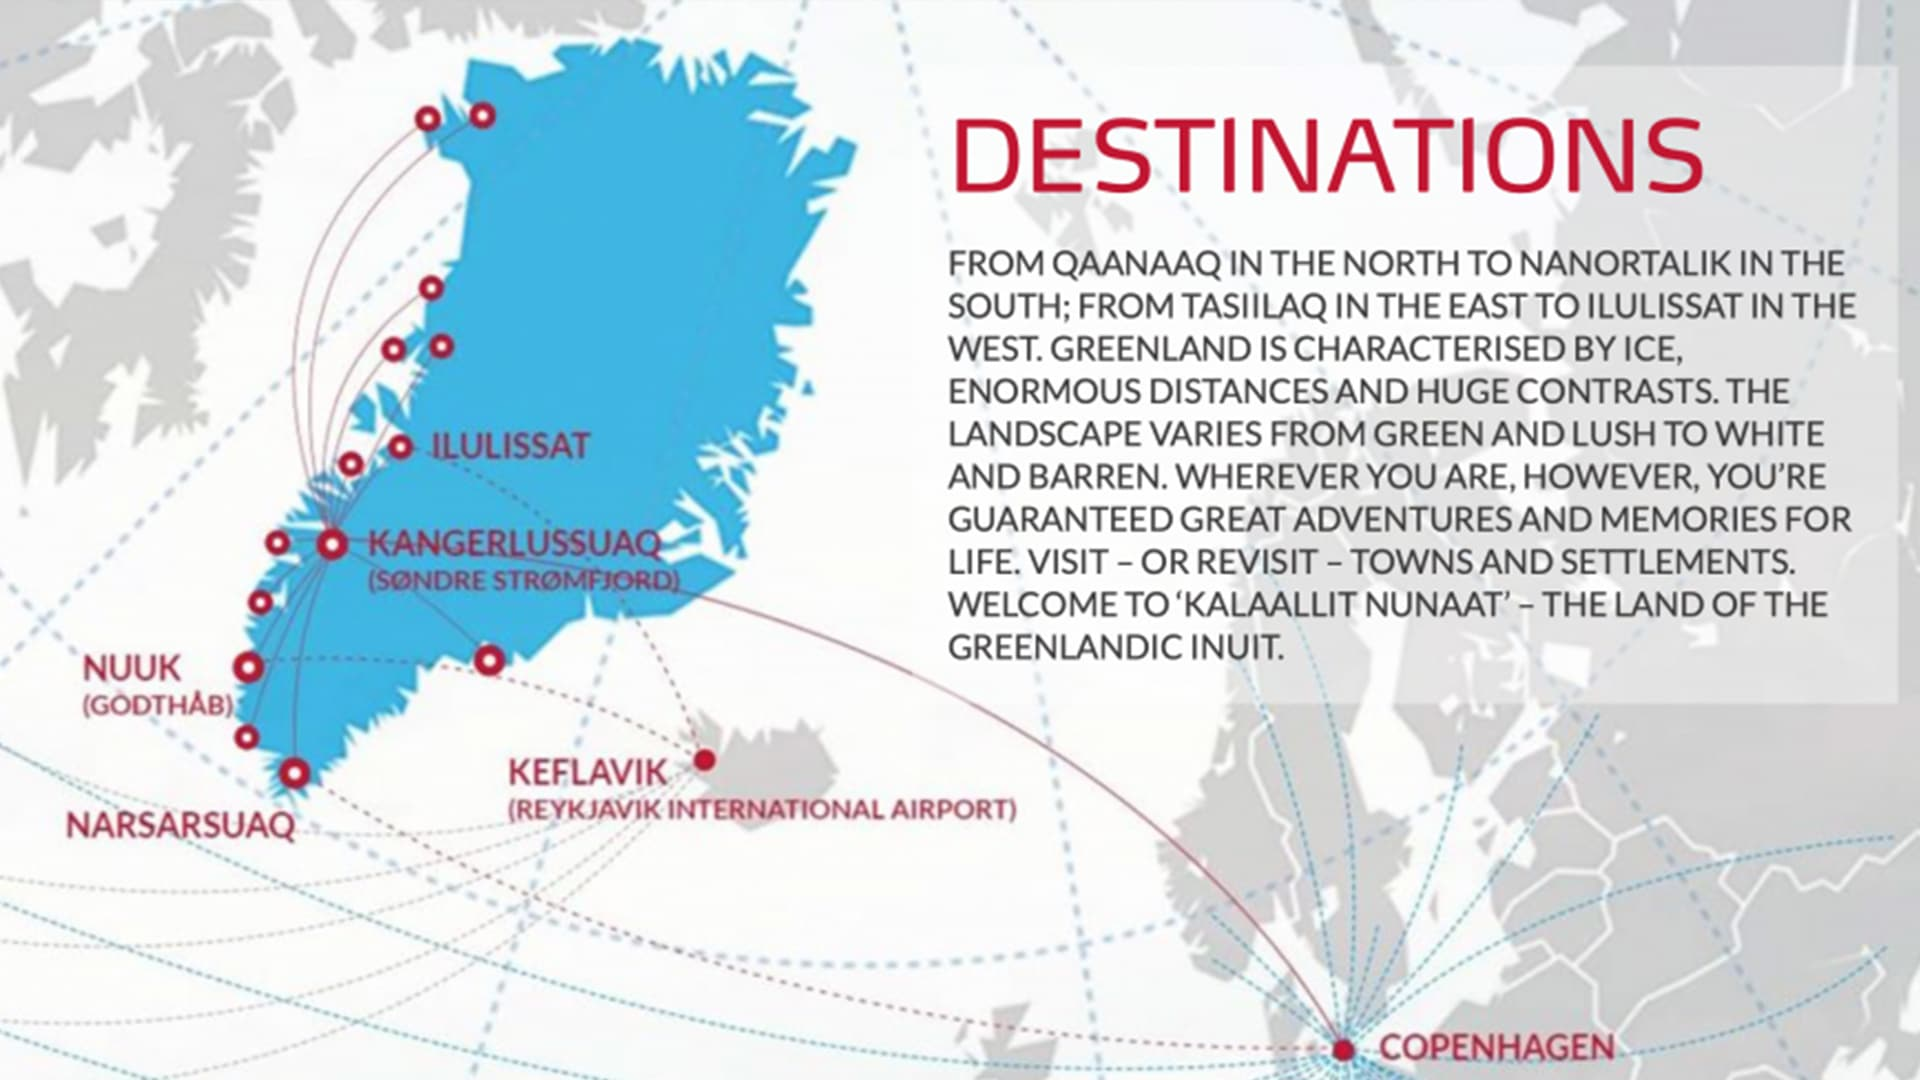 Destinations desservies par Air Greenland